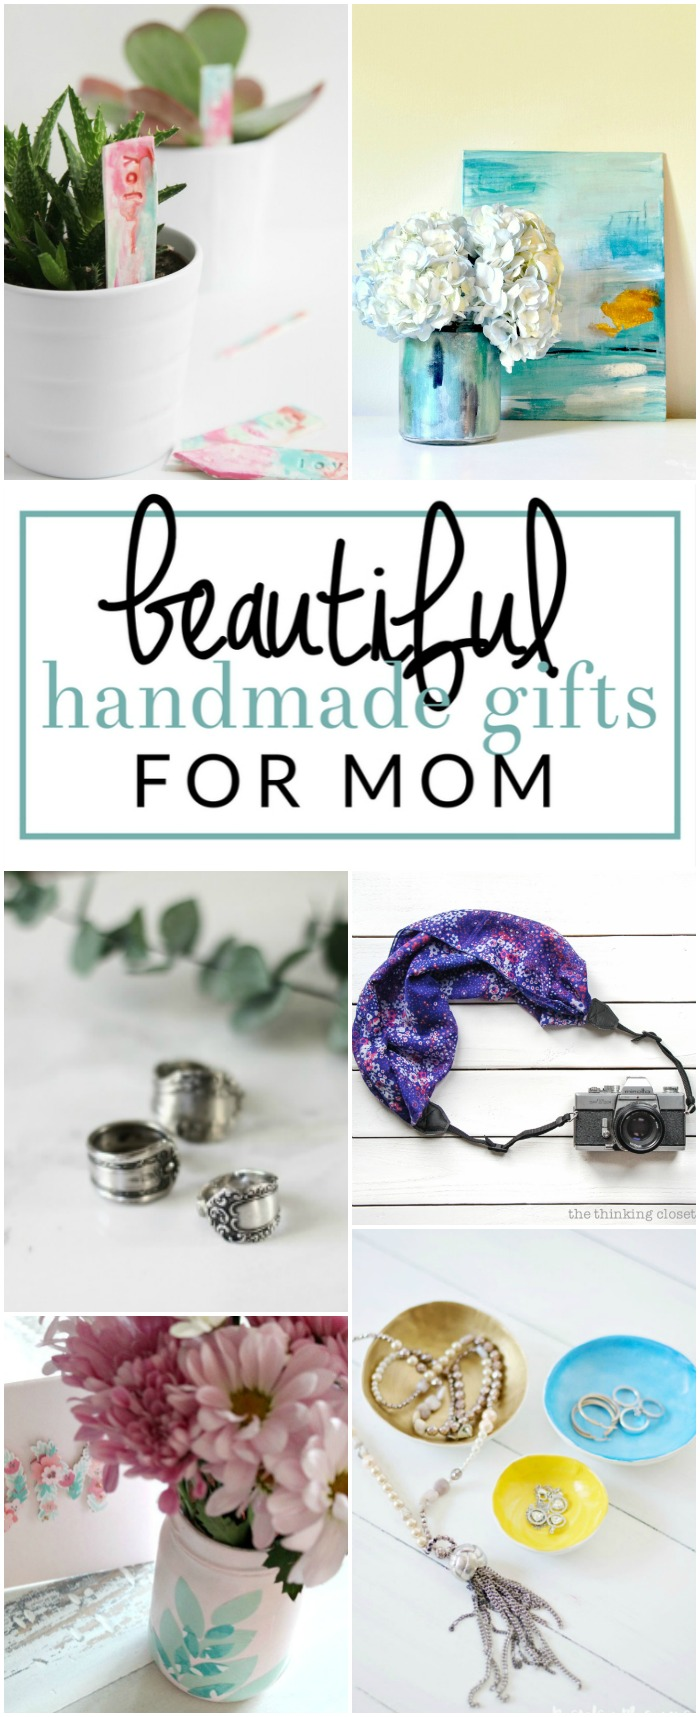 Make one of these special gifts for mom .  These are 13 of my favorite handmade gift ideas for mom on Mother's Day, birthday, Christmas, or just because!